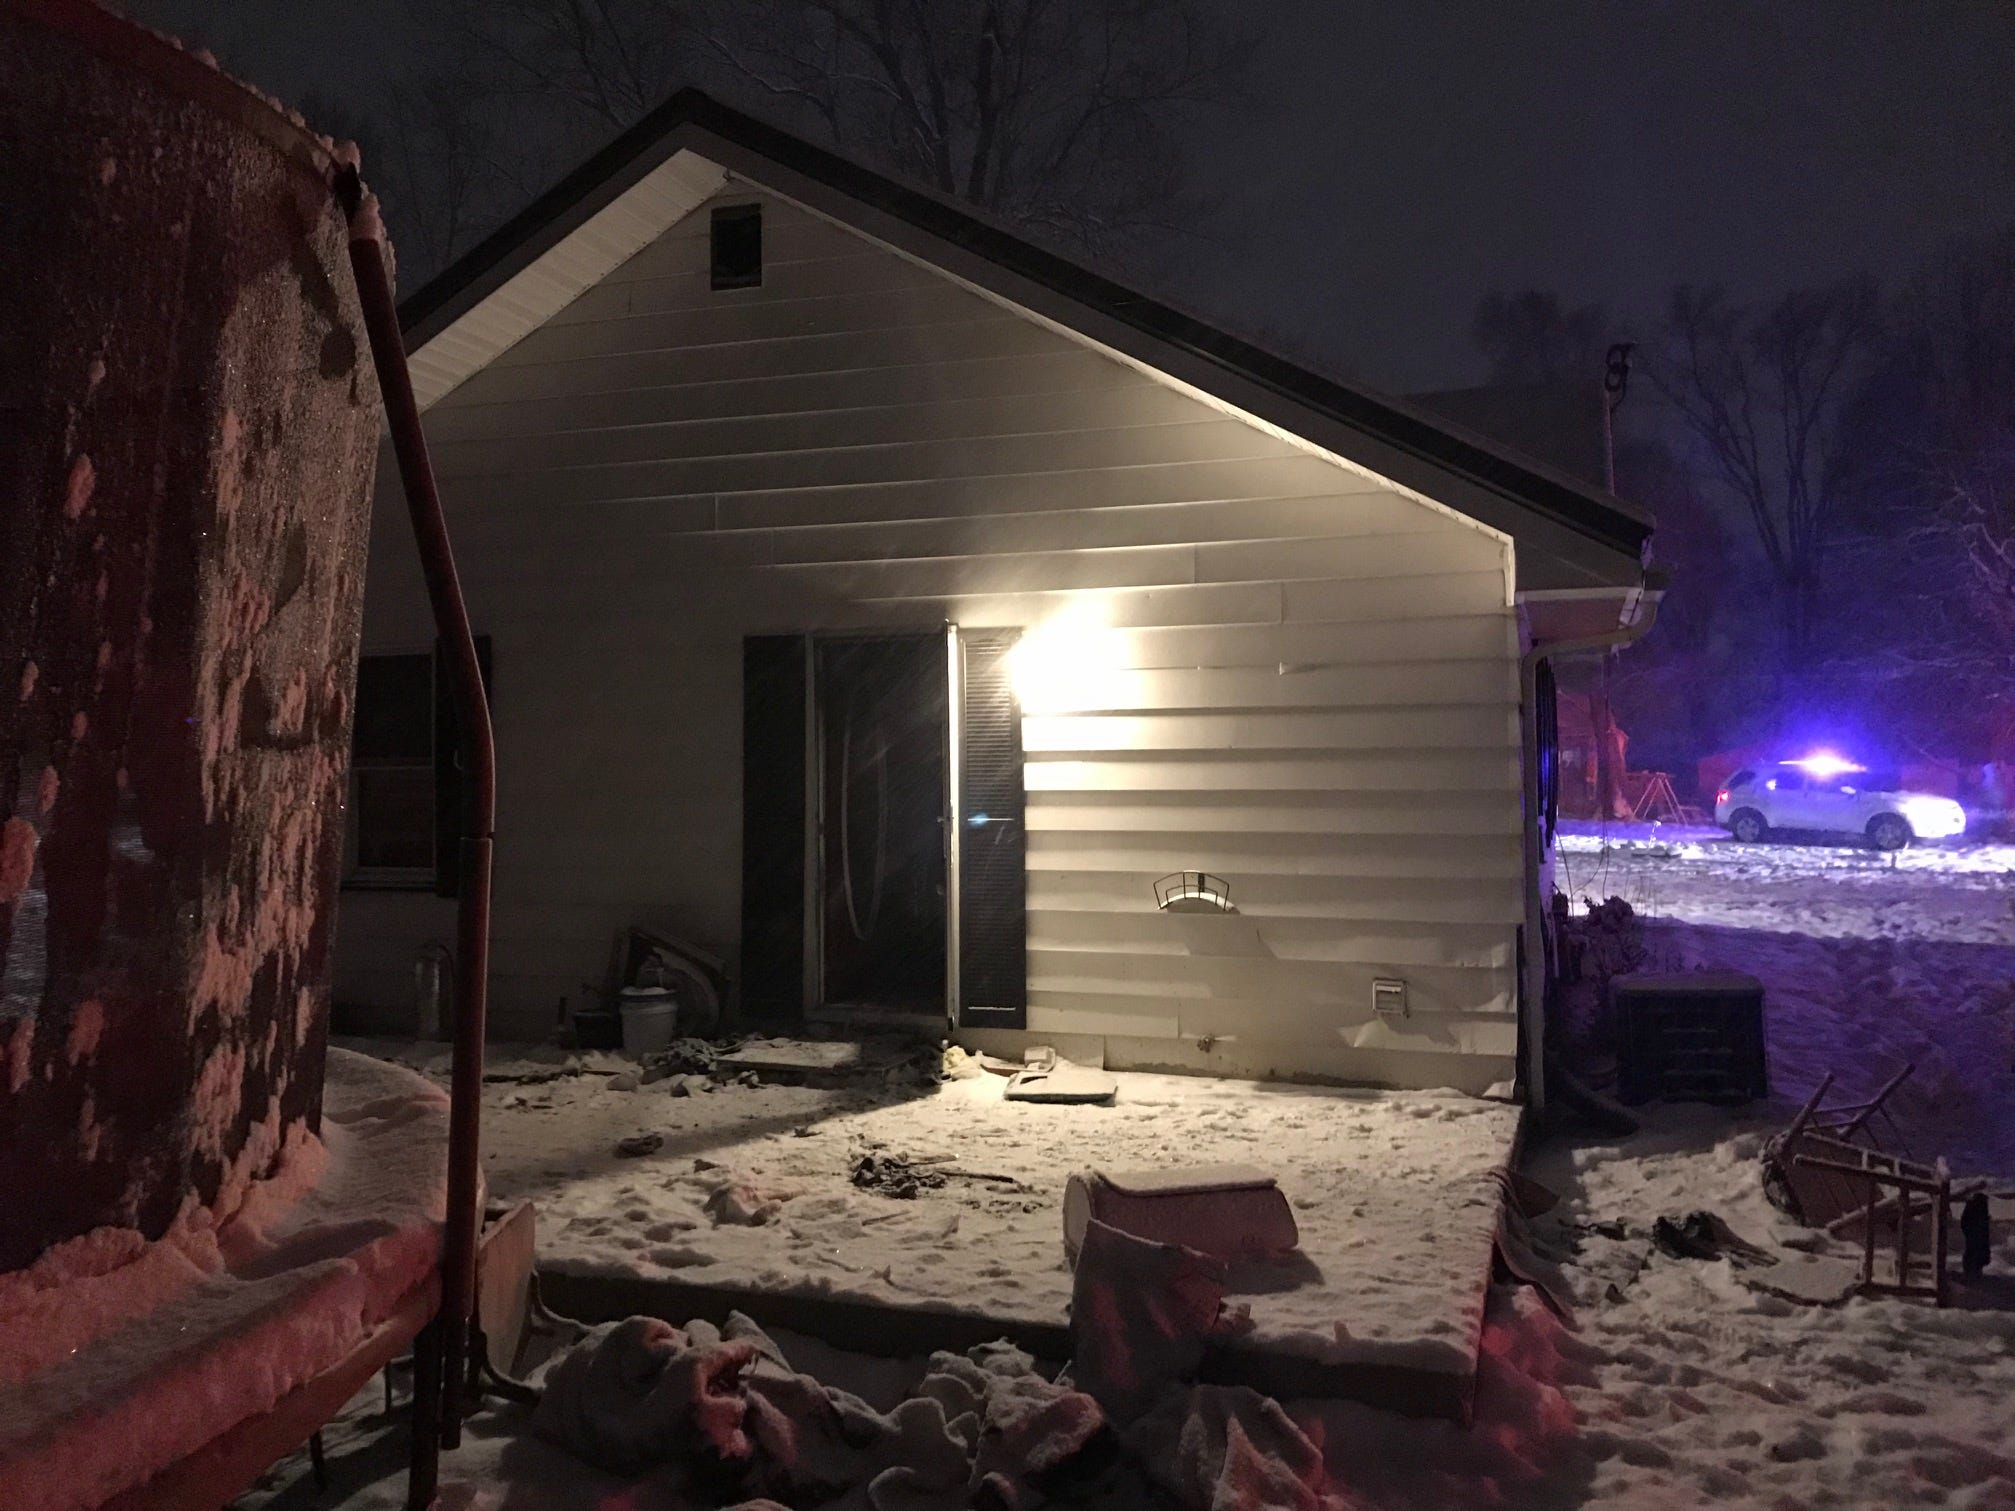 Volunteer firefighters late Thursday contended with snow accumulating on frozen roads when called to a house fire along Stick City Road in Monroe Township.